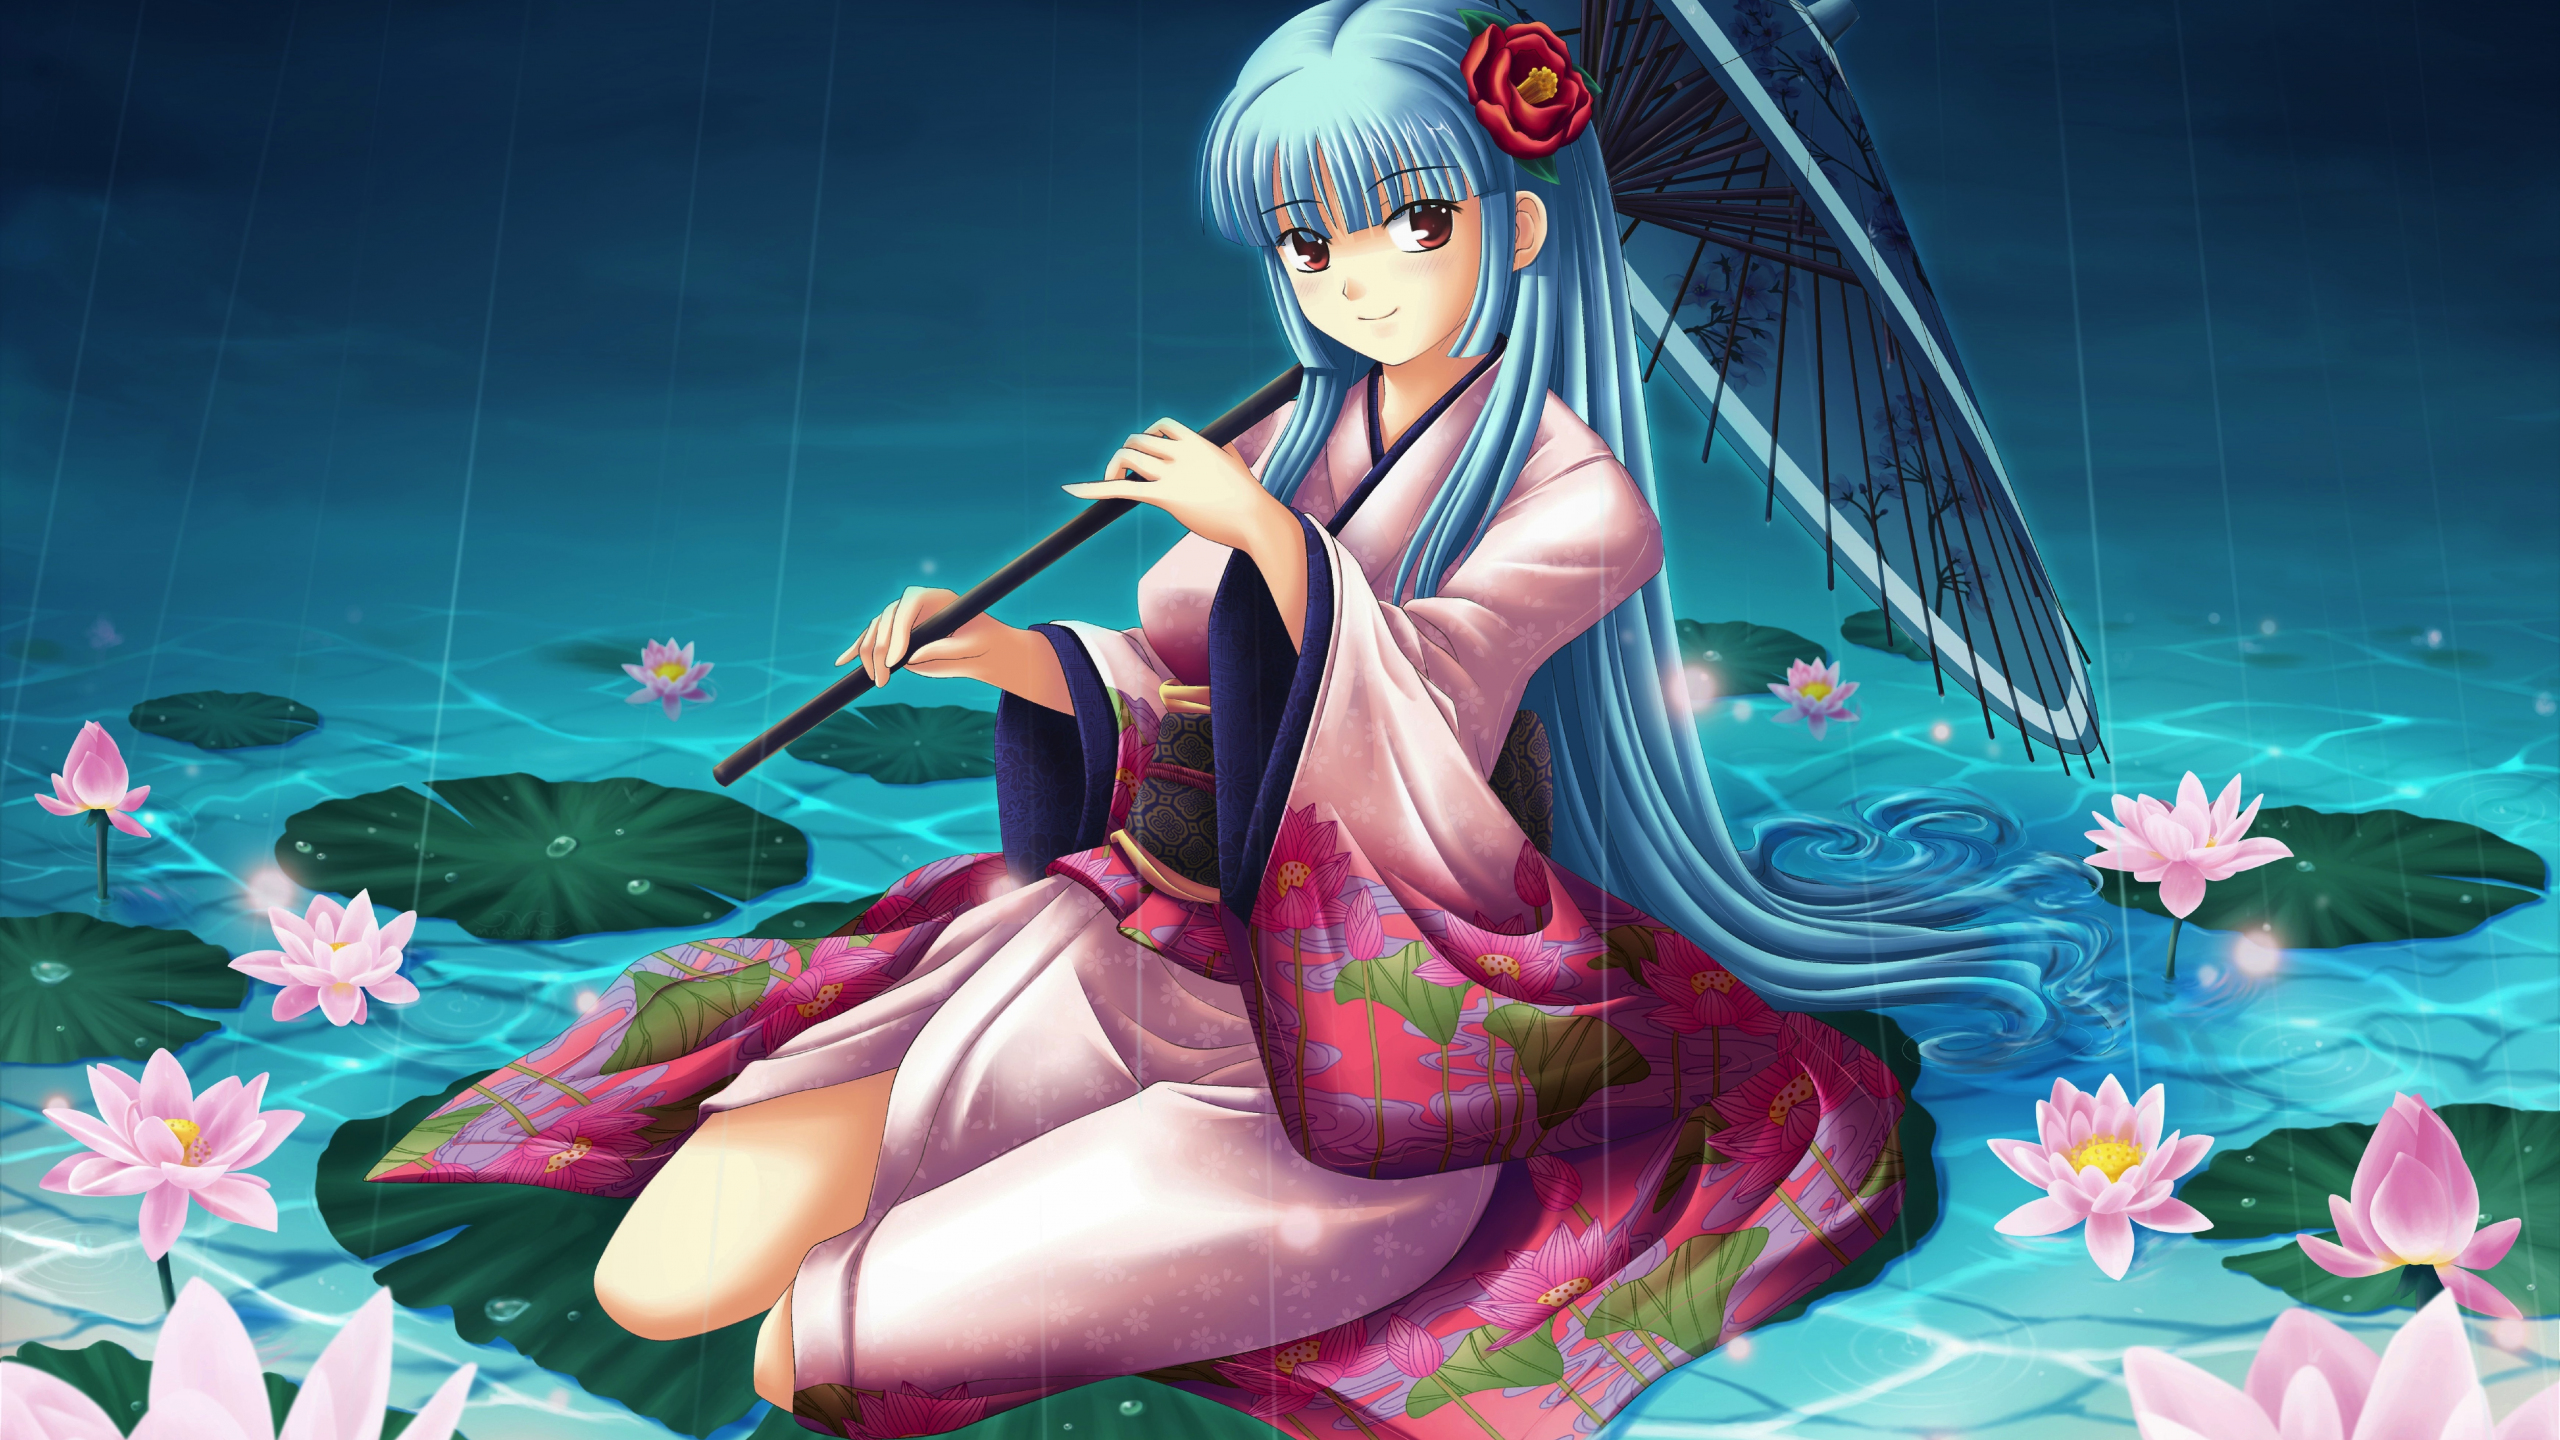 Download 2560x1440 wallpaper pond lake flowers anime - Anime girl picture download ...